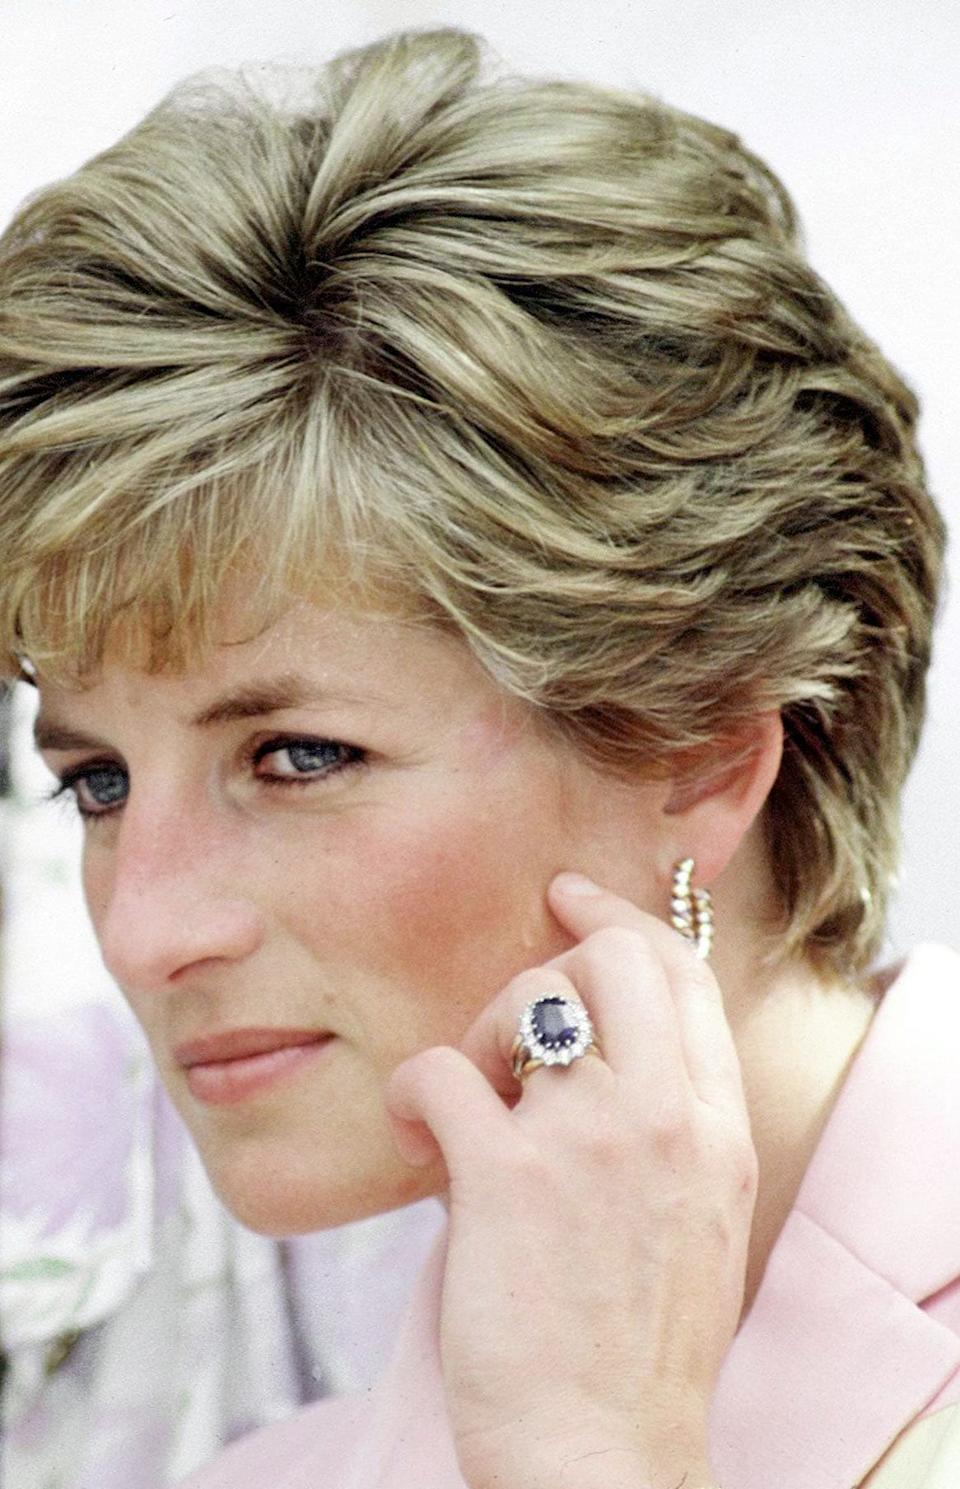 Princess Diana wearing her sapphire and diamond engagement ring - Tim Graham Photo Library via Getty Images